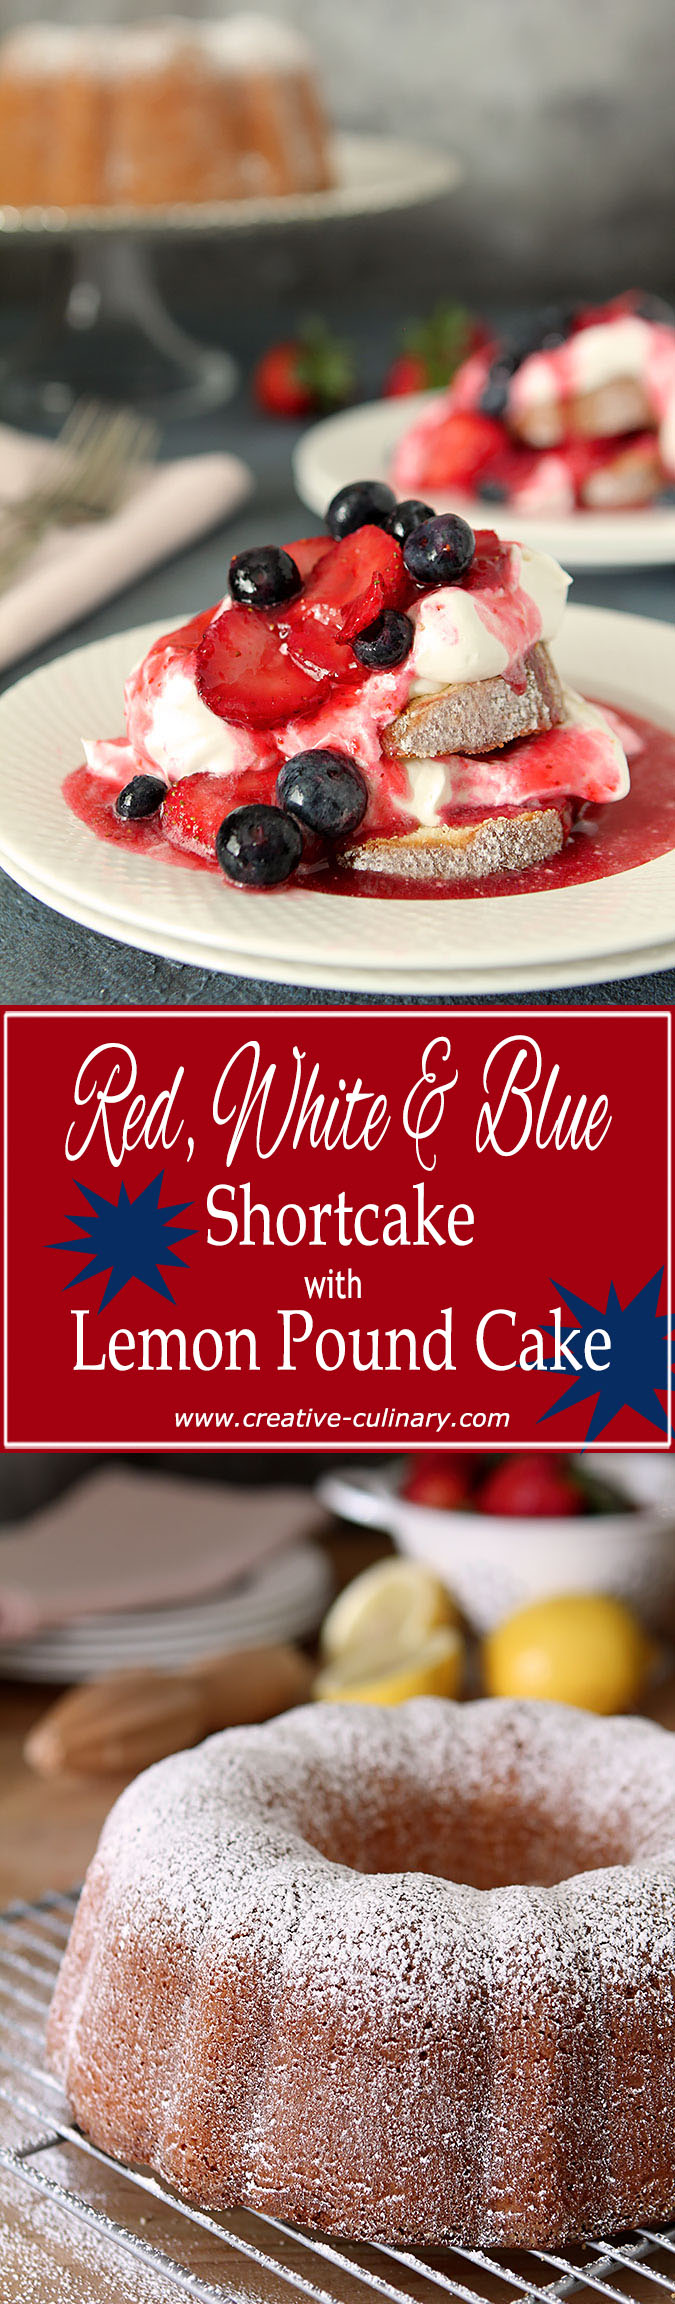 This Red, White, and Blue Shortcake, with Lemon Pound Cake, is the perfect summer dessert.